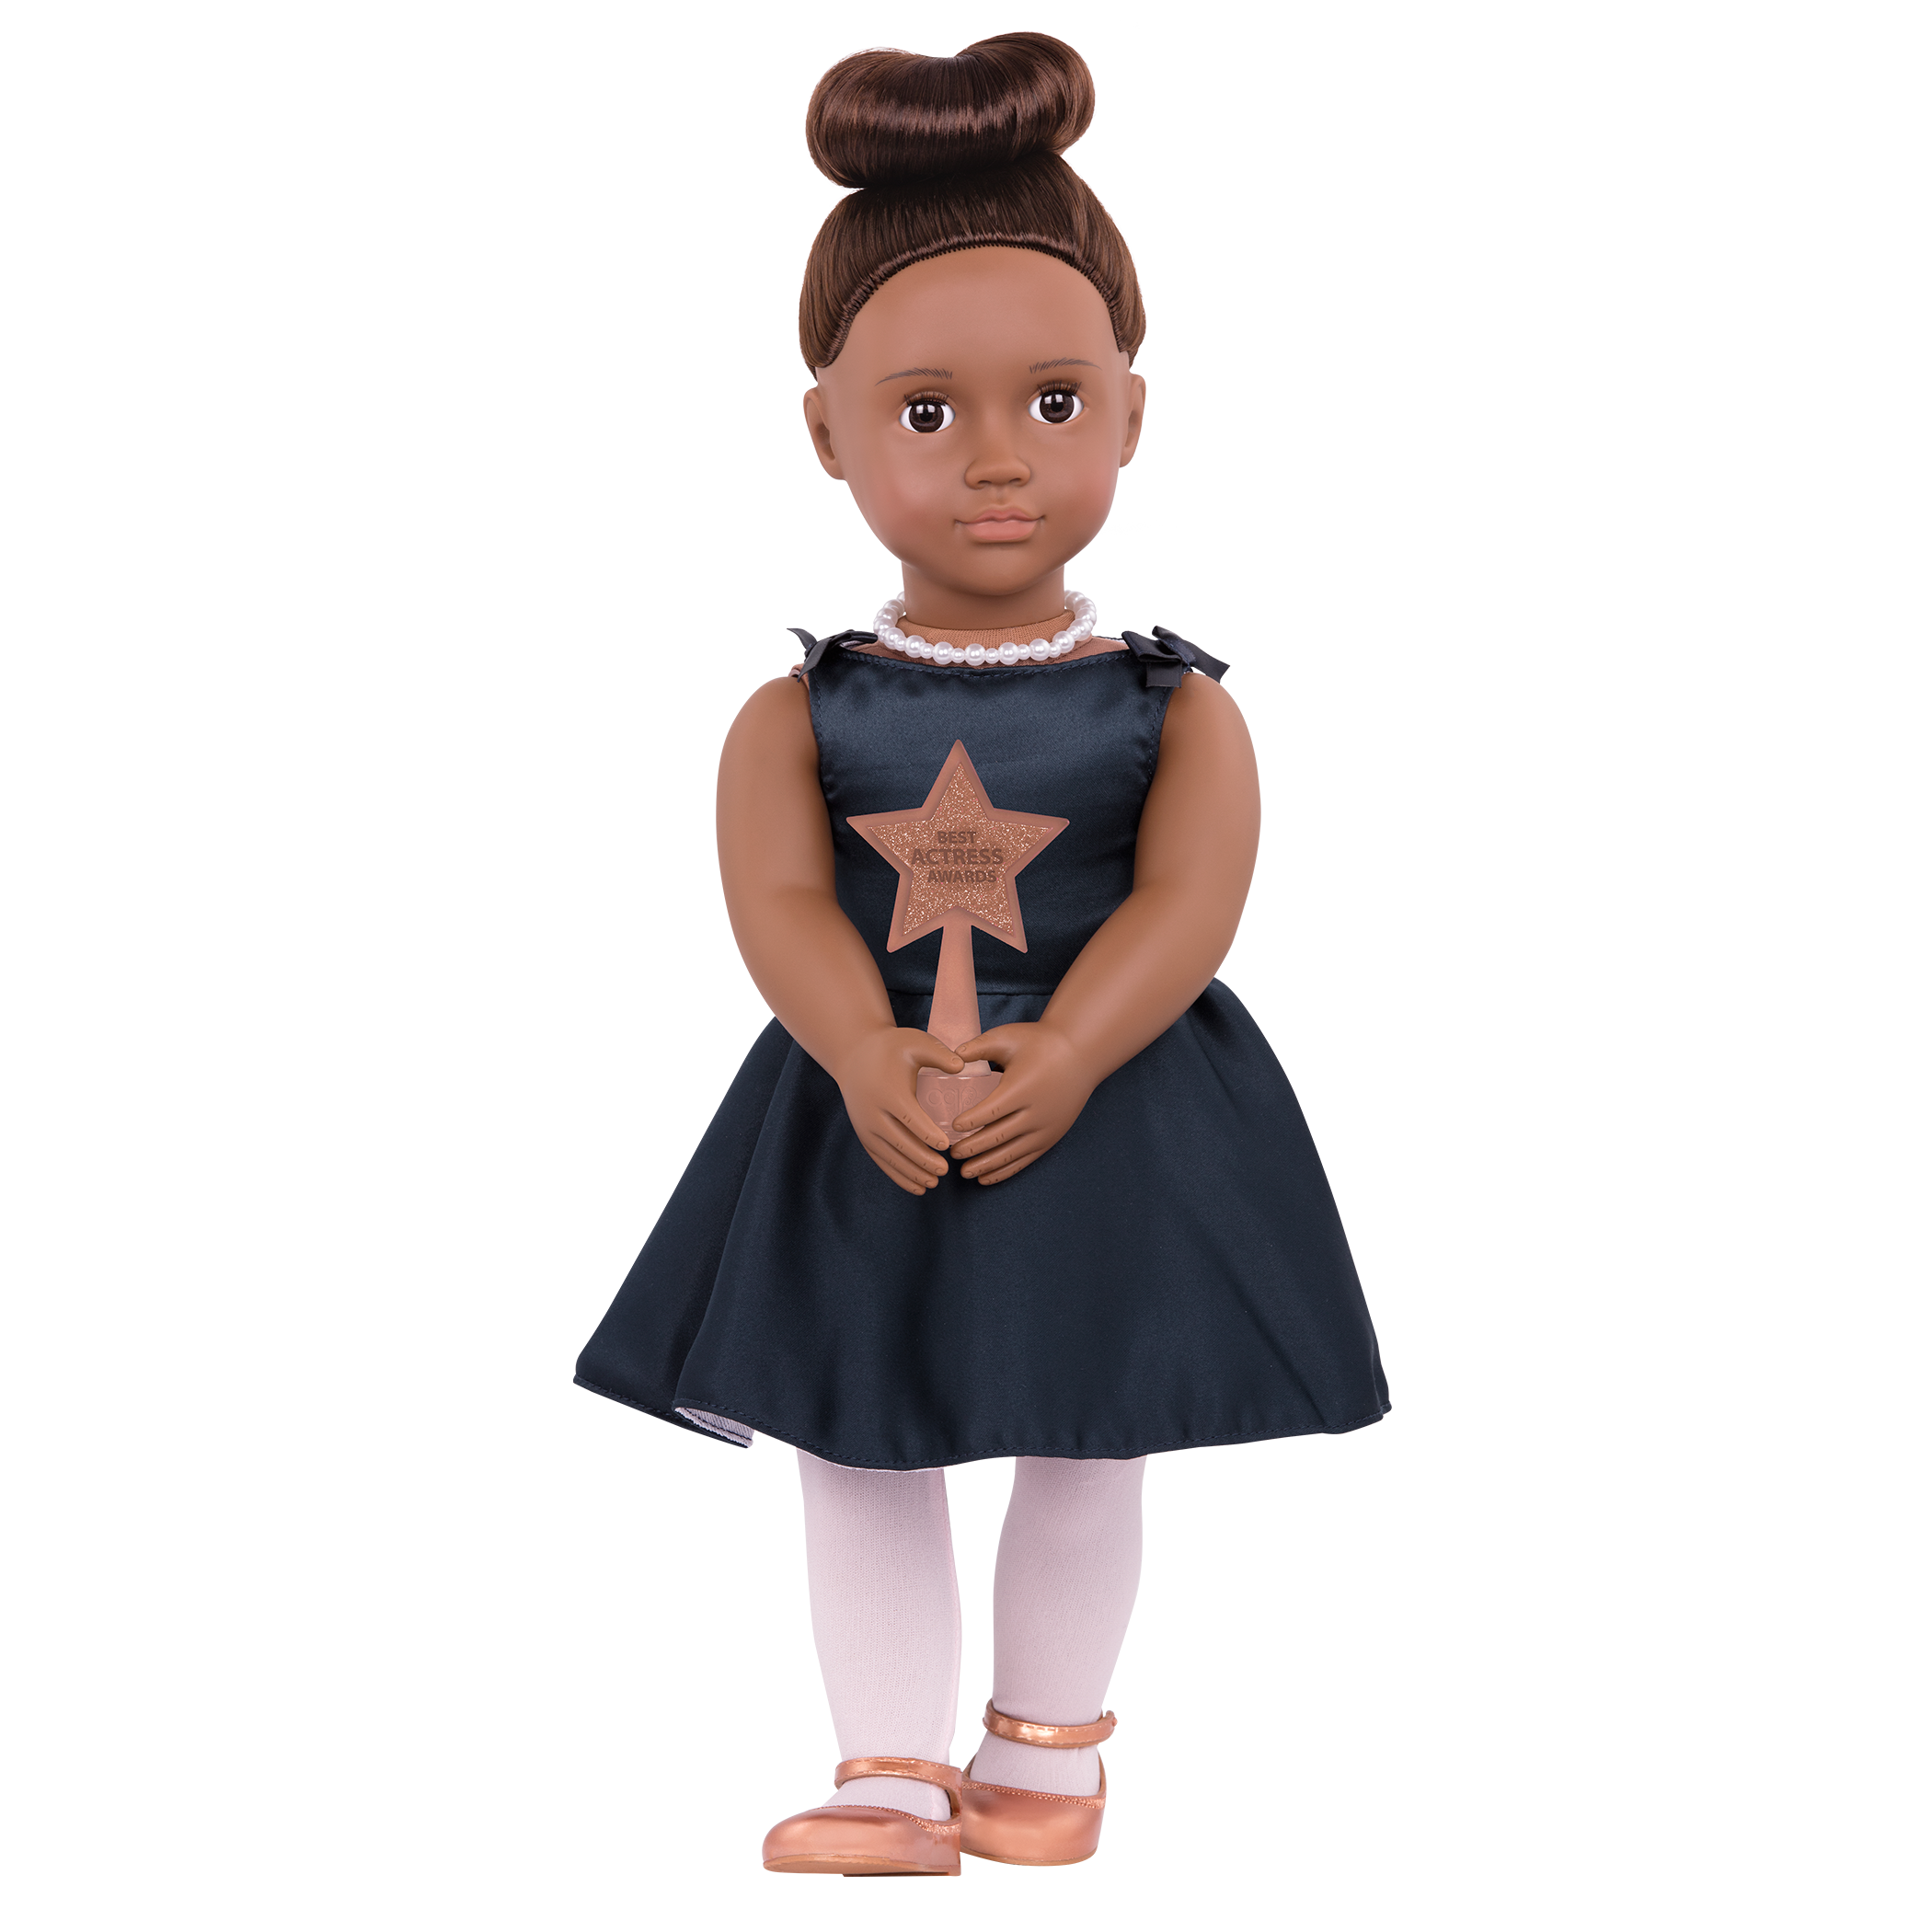 Malika Regular 18-inch Actress Doll holding award